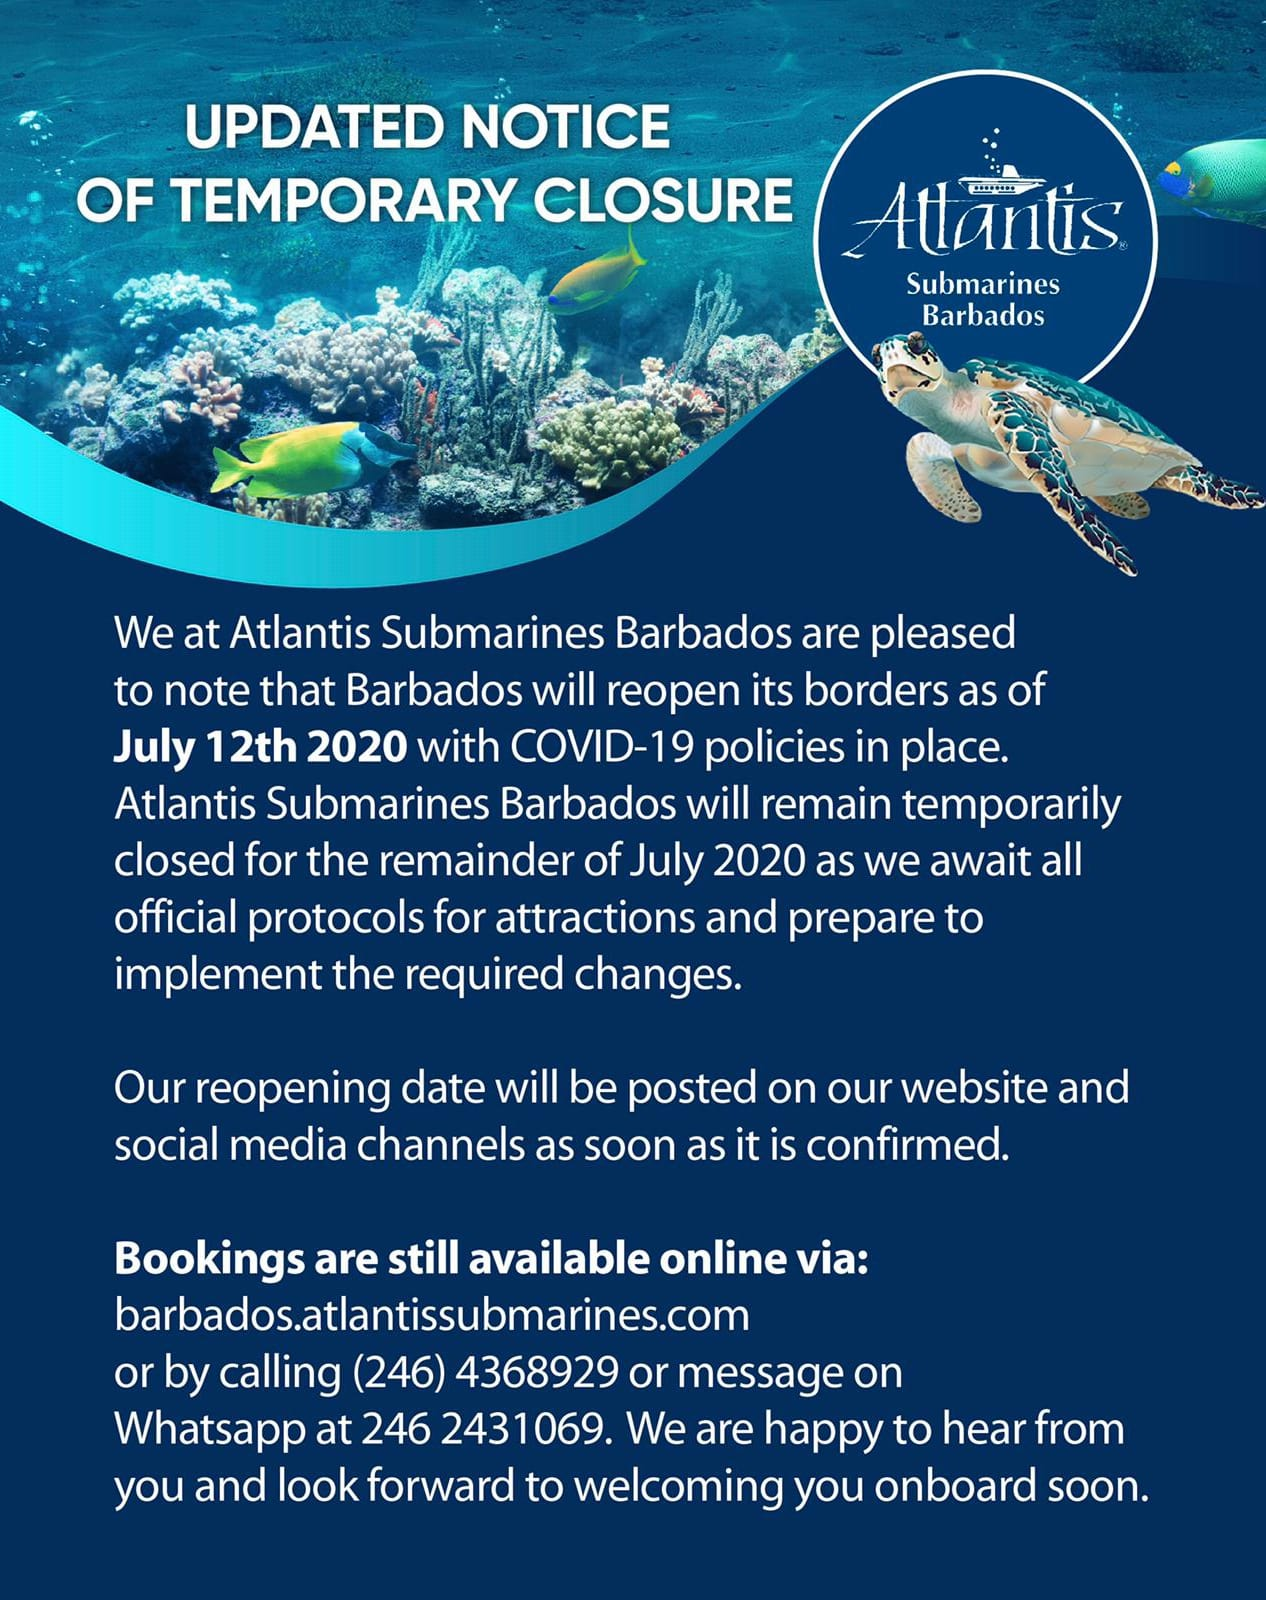 Updated Notice of Temporary Closure